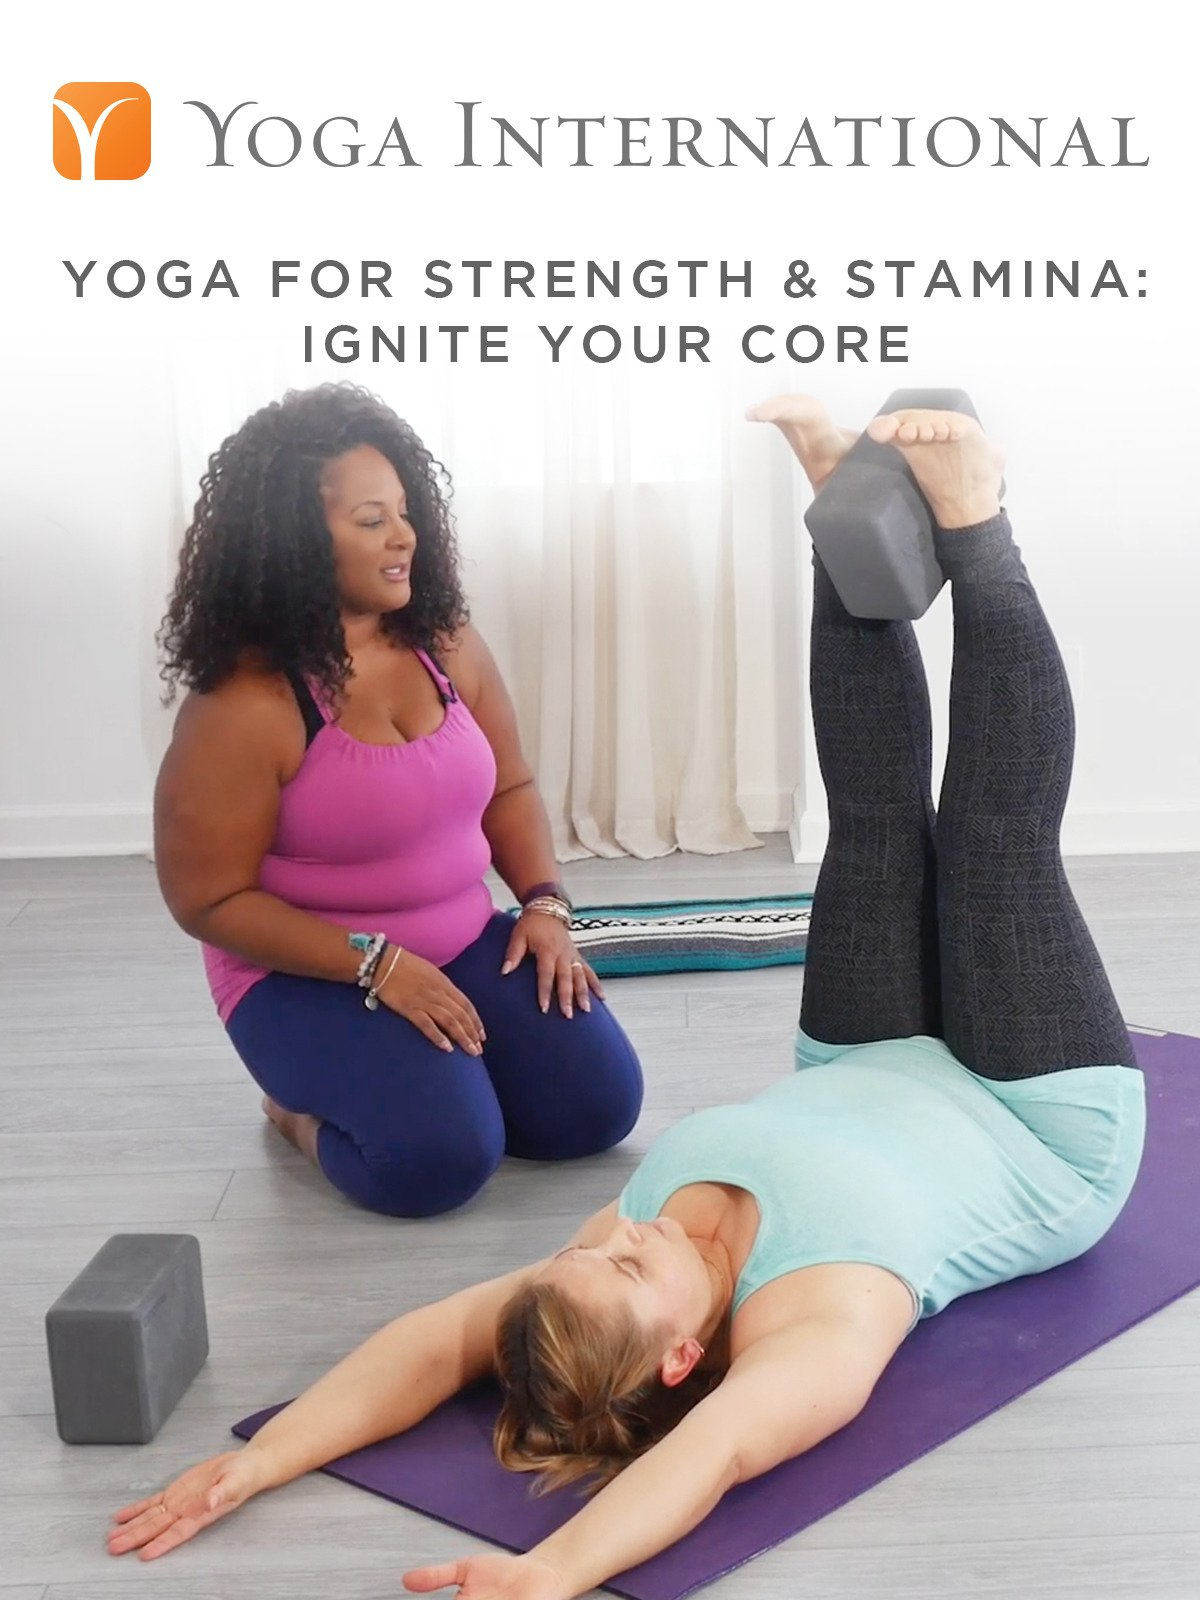 Yoga for Strength & Stamina: Ignite Your Core